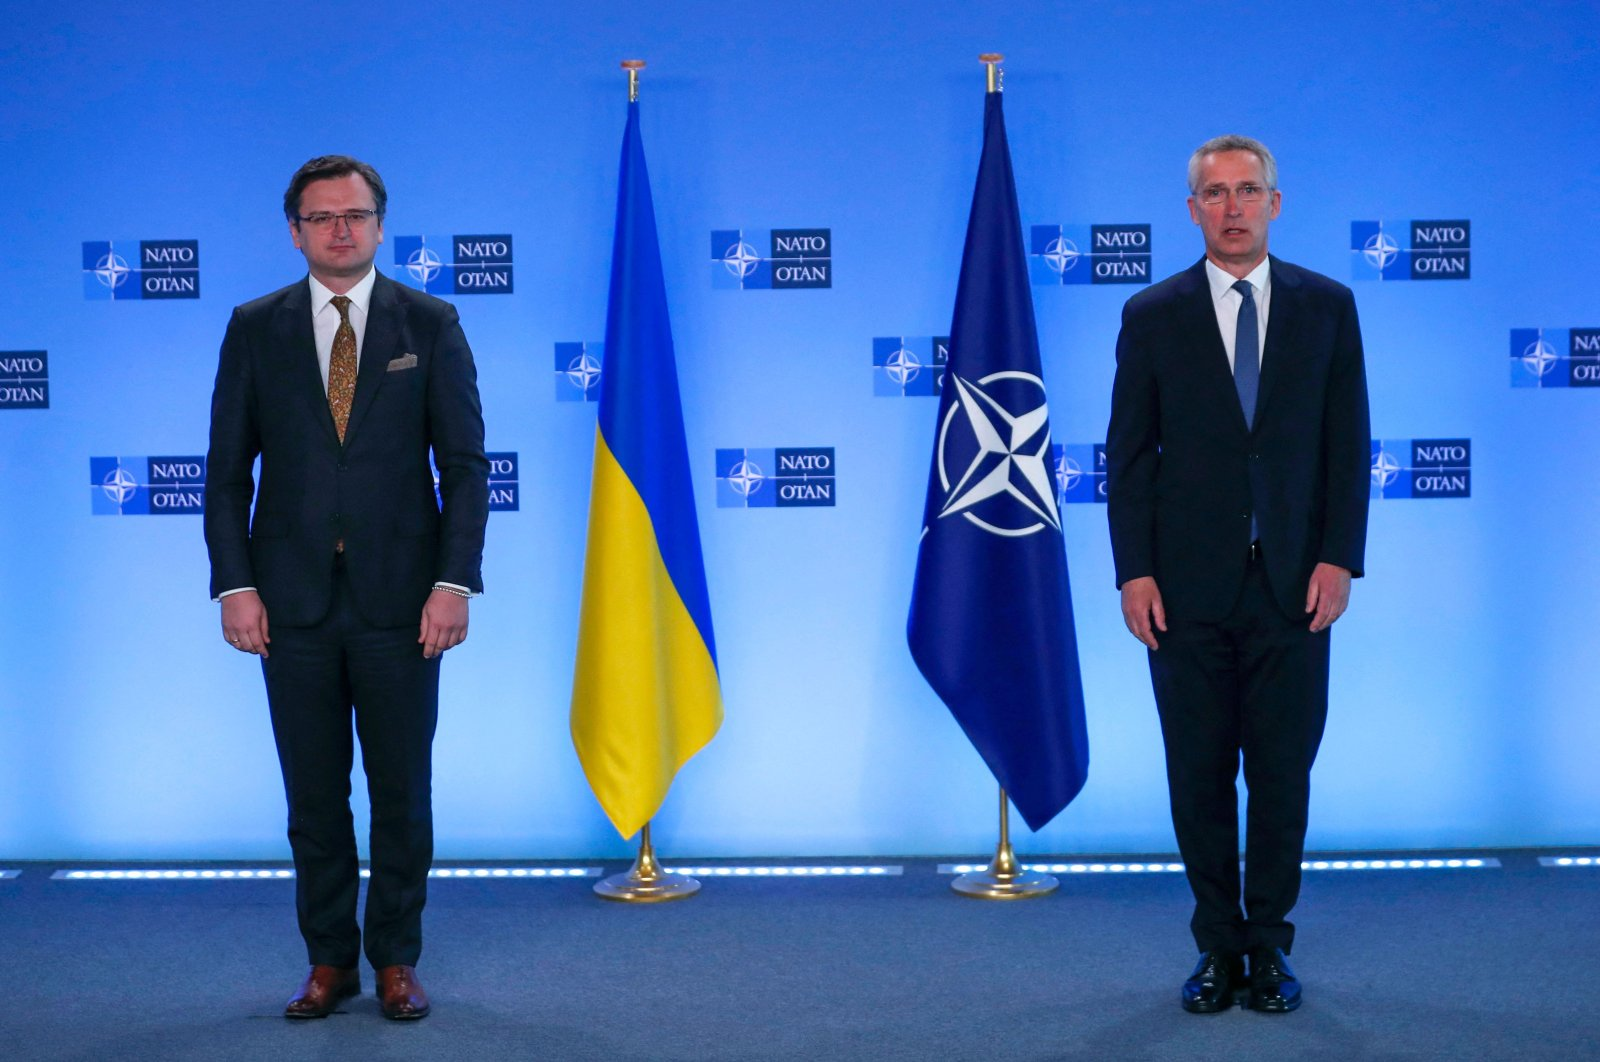 Ukraine's Foreign Minister Dmytro Kuleba (L) and NATO Secretary-General Jens Stoltenberg pose prior to their meeting at NATO headquarters in Brussels, on April 13, 2021. (AFP Photo)